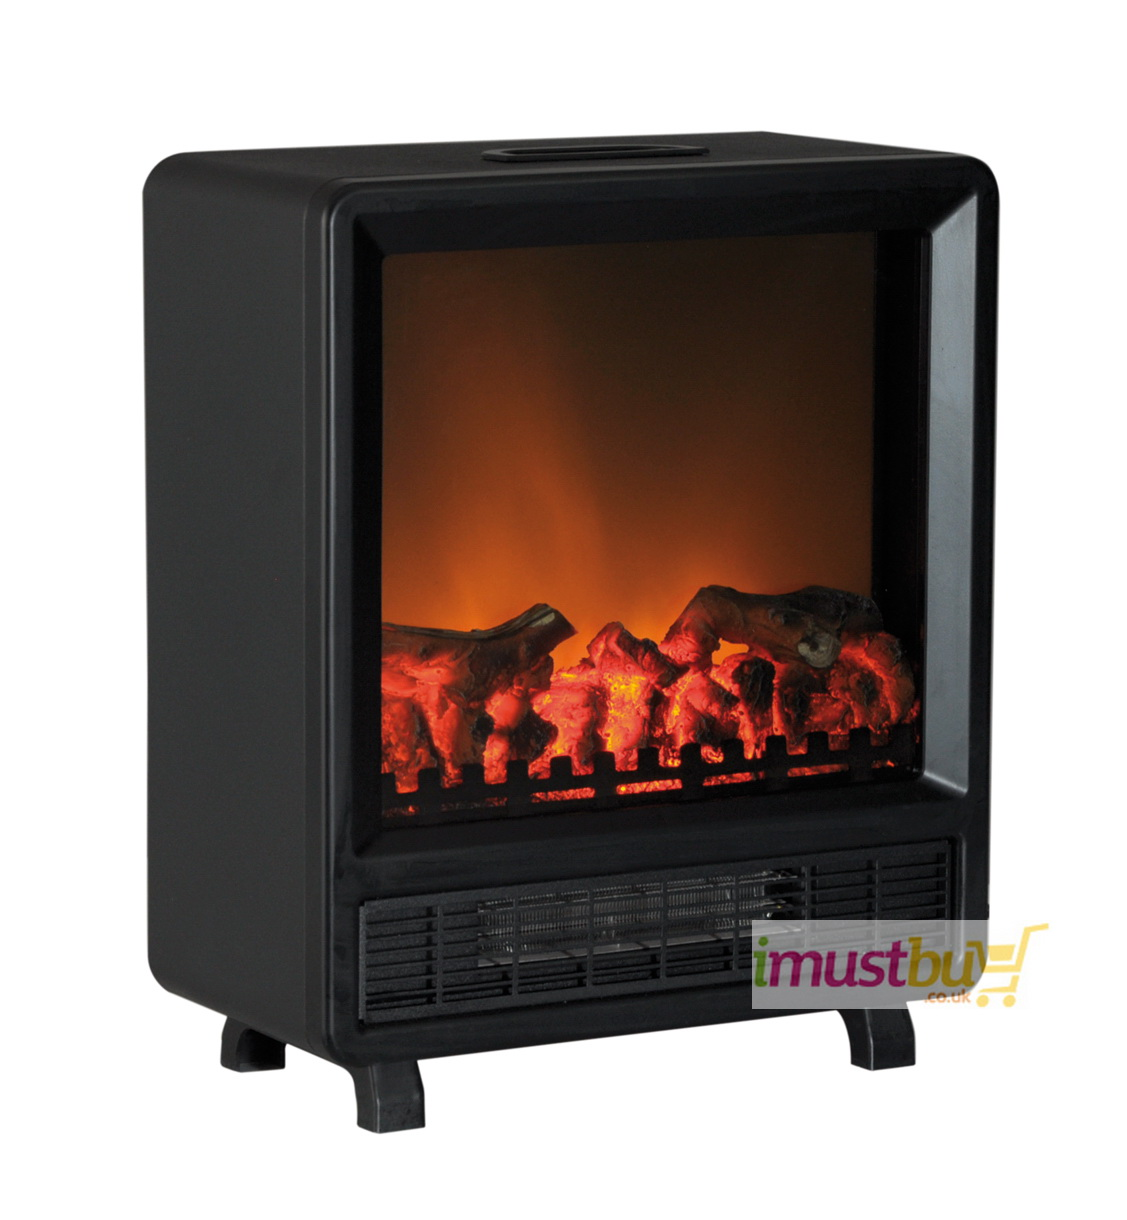 Electric Stove Heater ~ Imustbuy prem i air kw log flame effect electric stove